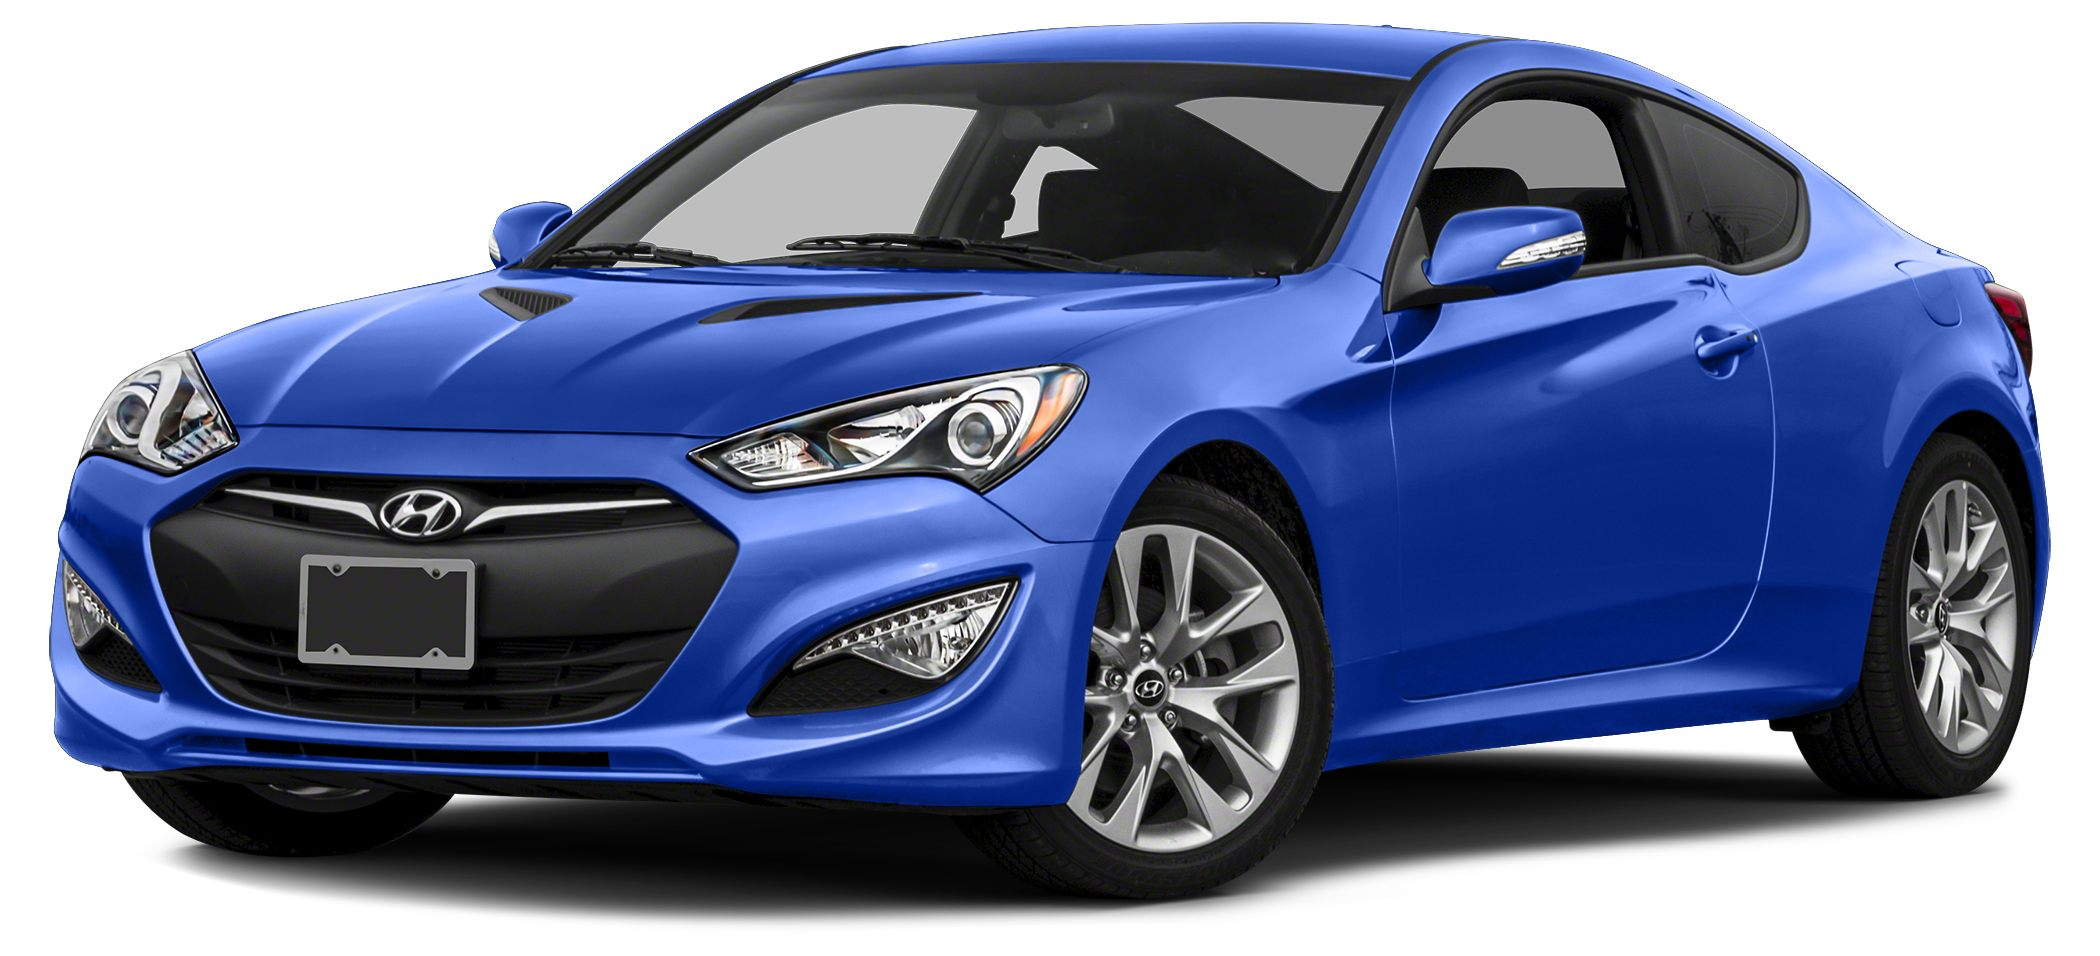 2016 Hyundai Genesis Coupe 38 R-Spec Stick shift Perfect Color Combination This beautiful 2016